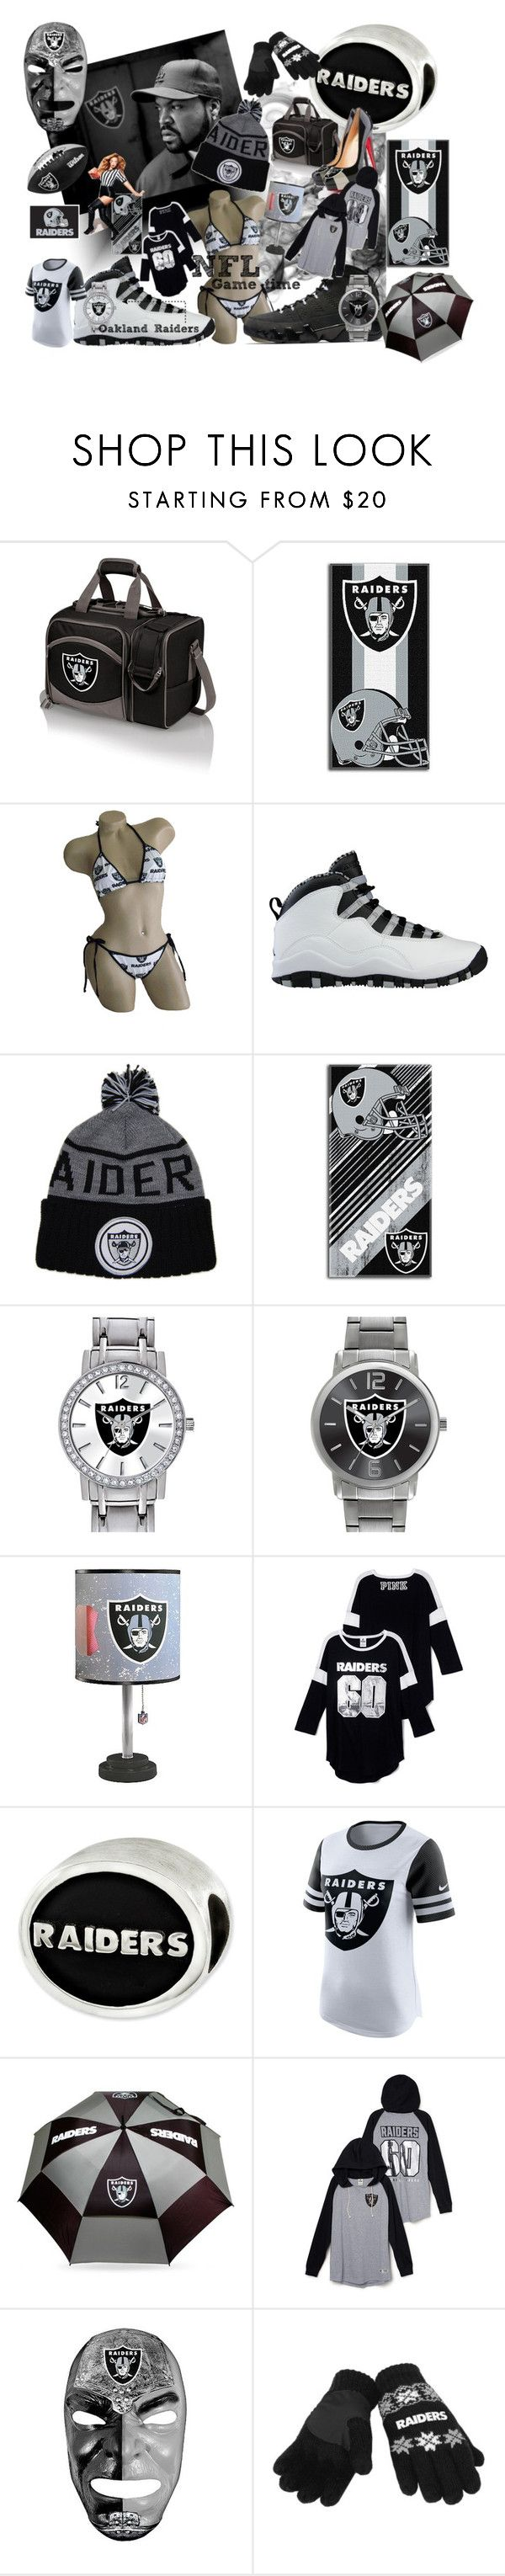 """Game time"" by jnellypisces22 on Polyvore featuring Picnic Time, NIKE, The Northwest Company, Game Time, Team Golf, Forever Collectibles, gametime, NFL, footballfashion and SilverNBlack"